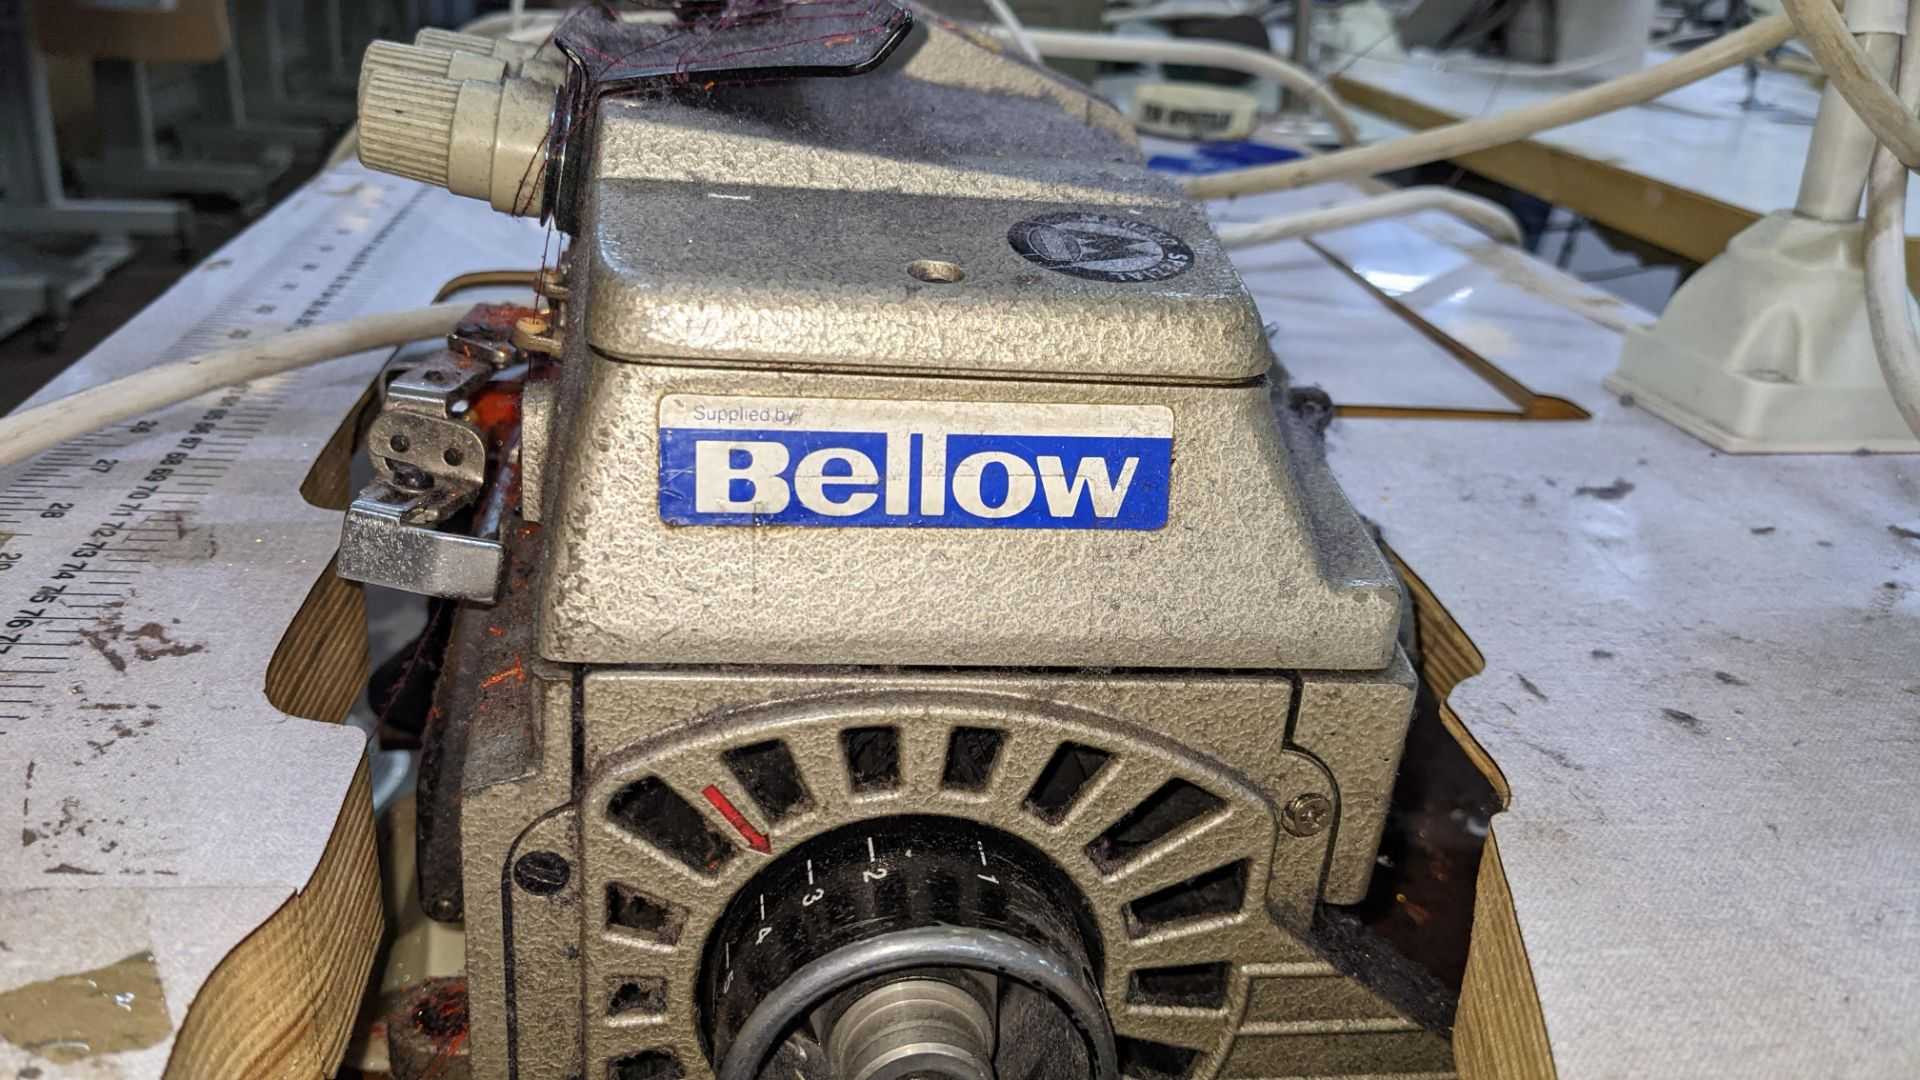 Bellow overlocker - Image 9 of 13